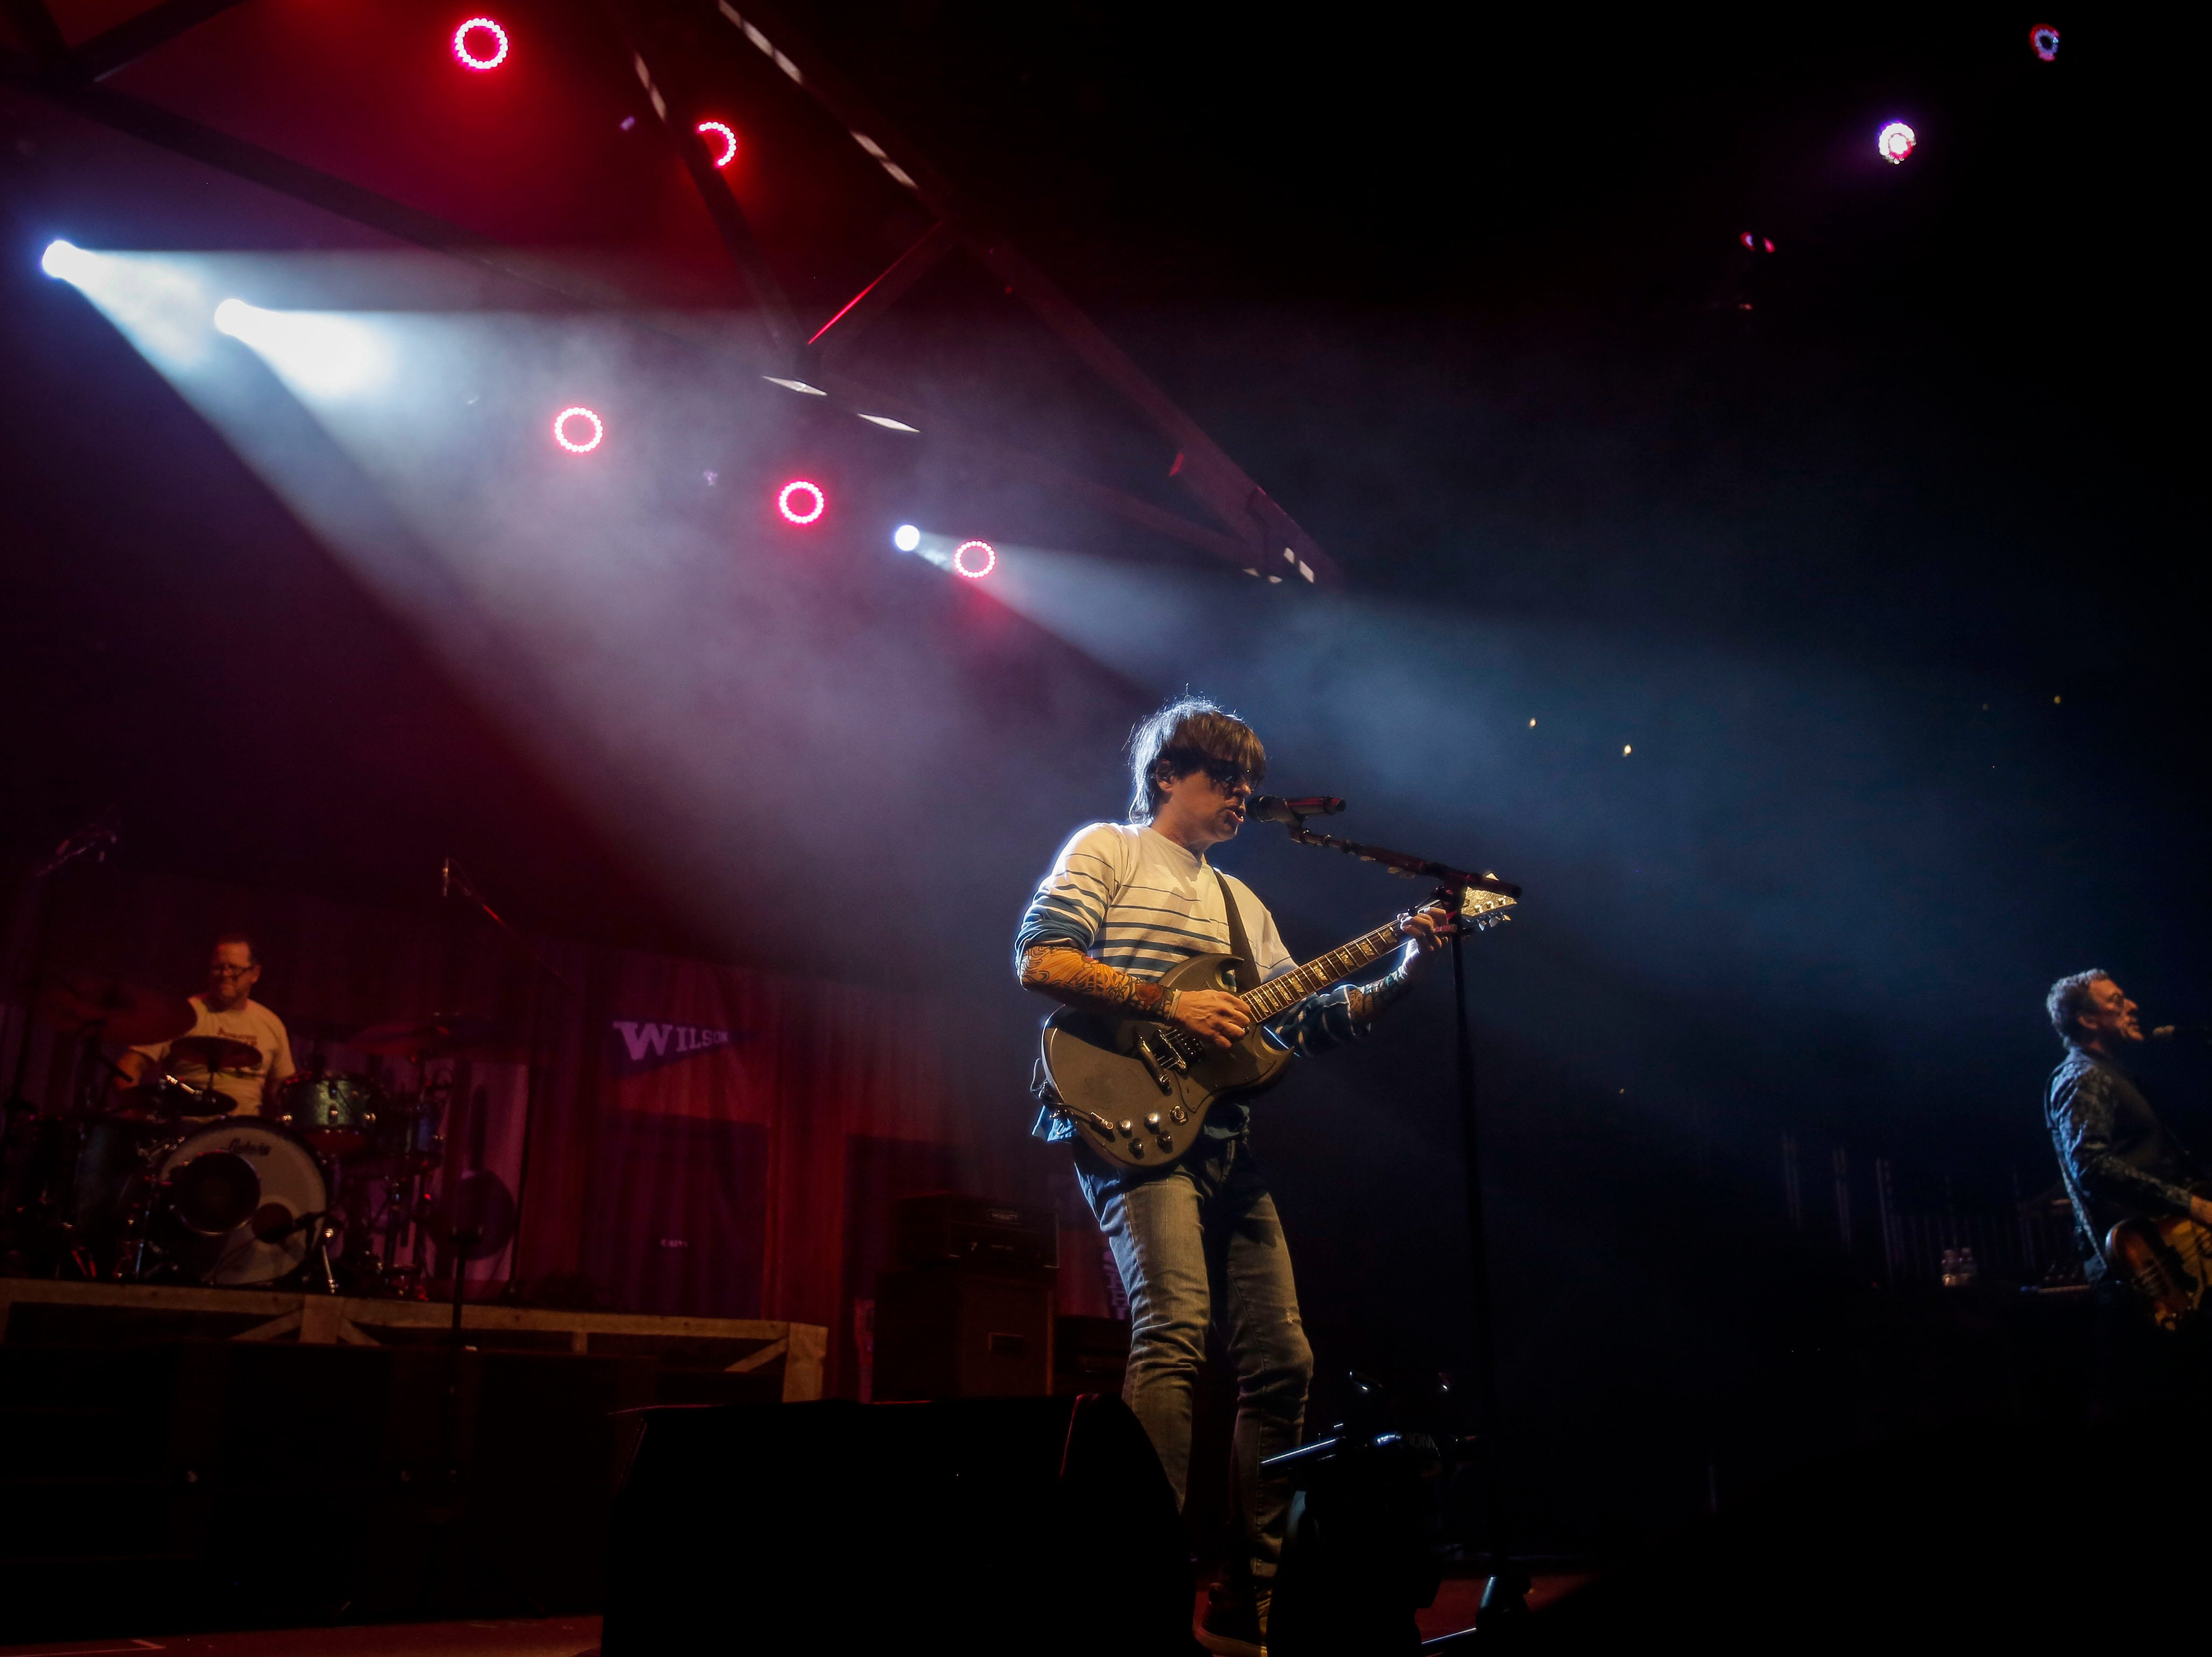 Weezer performs during the first show of the Weezer x Pixies 2019 tour at the KFC Yum! Center in downtown Louisville, Ky. on Friday, March 8, 2019.